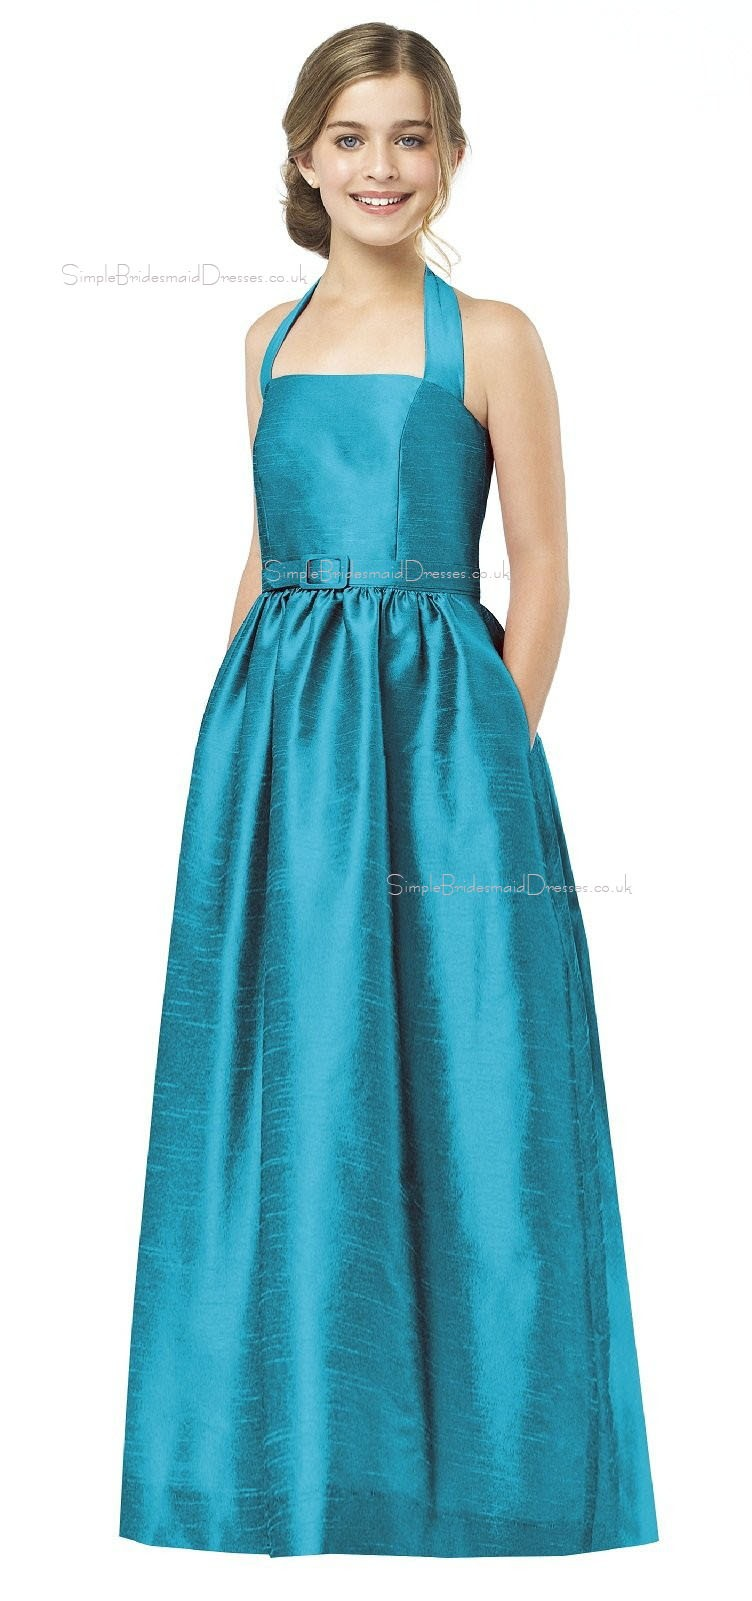 Light Turquoise Bridesmaid Dresses Uk